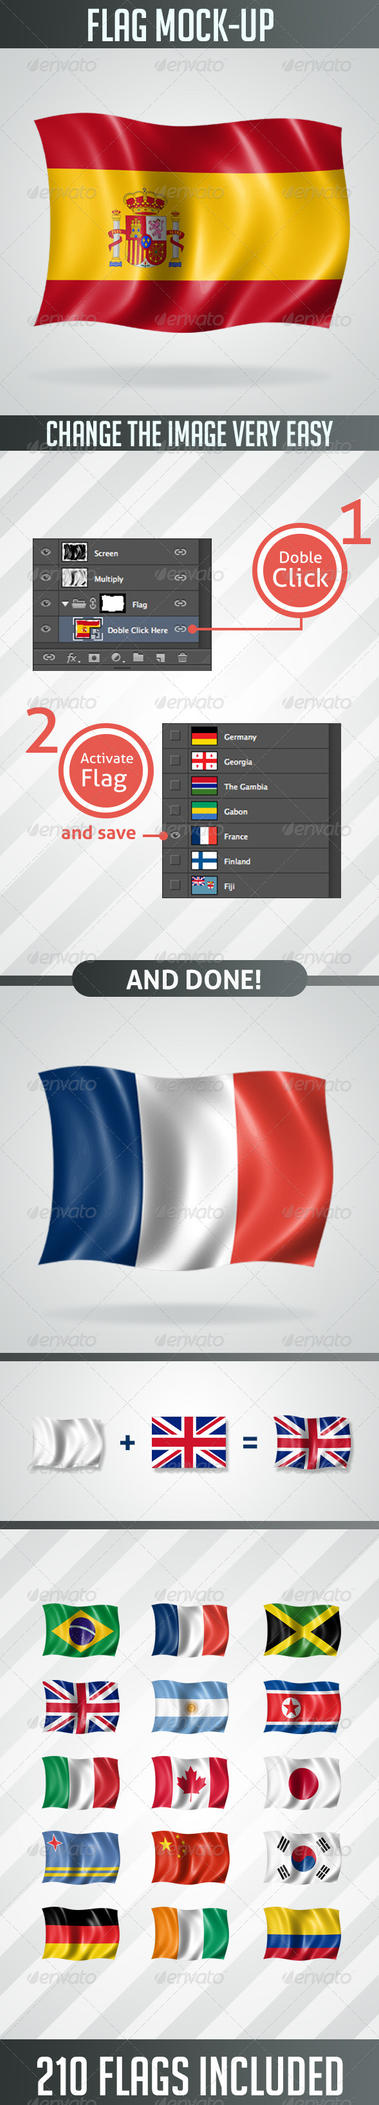 210 Flags MockUp in High Resolution by LuxAeternaDesign